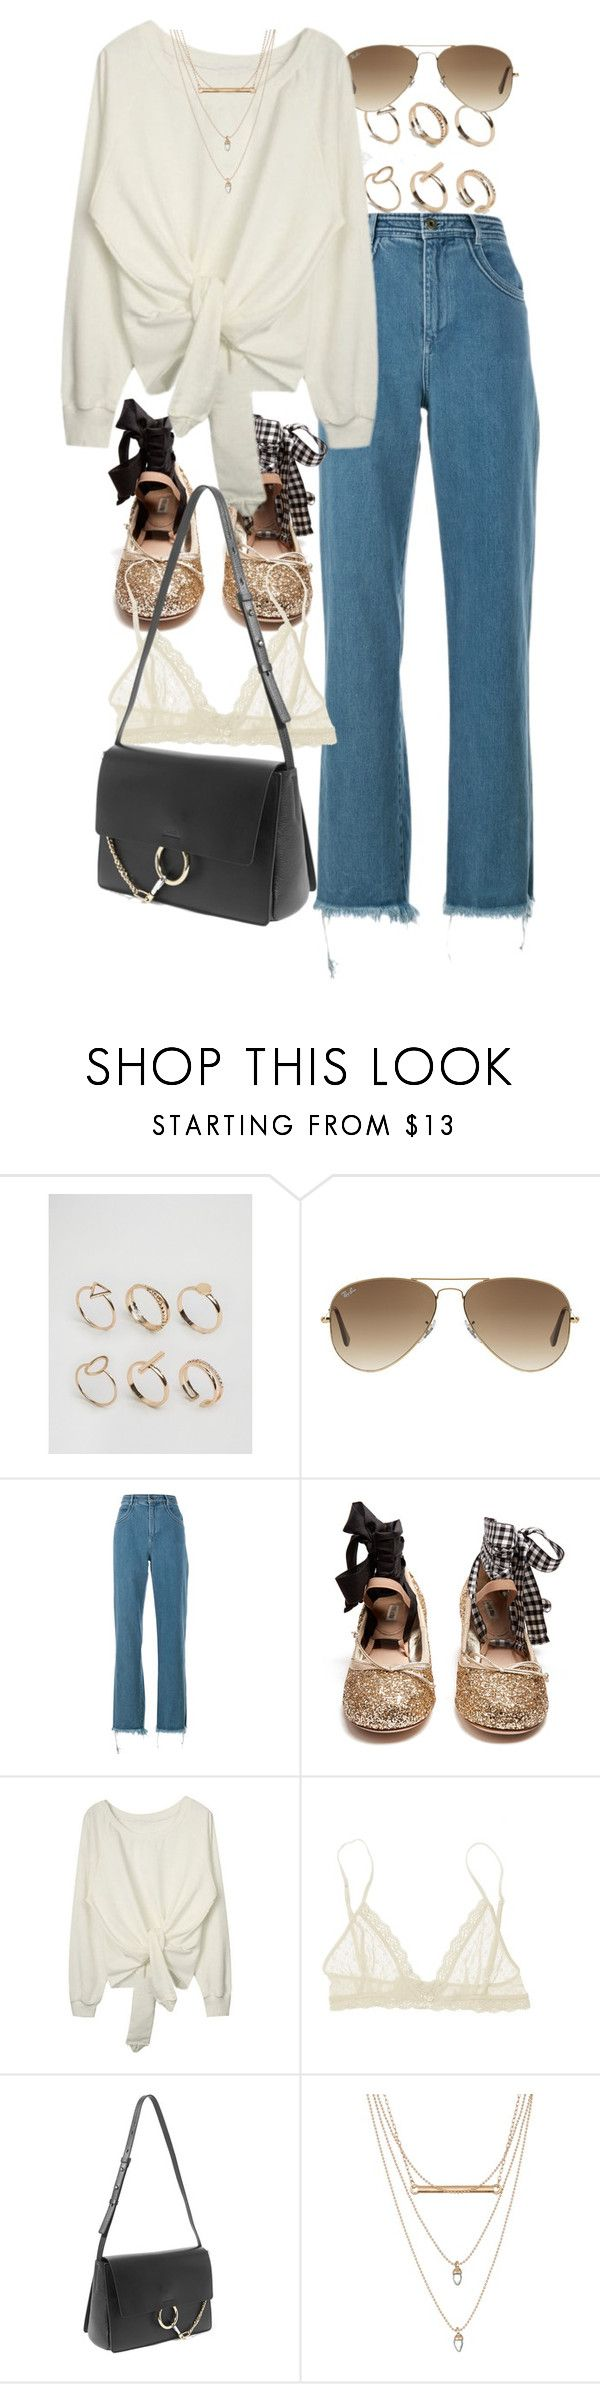 """""""Untitled #10245"""" by nikka-phillips ❤ liked on Polyvore featuring ALDO, Ray-Ban, Chloé, Miu Miu, Eberjey and Free Press"""